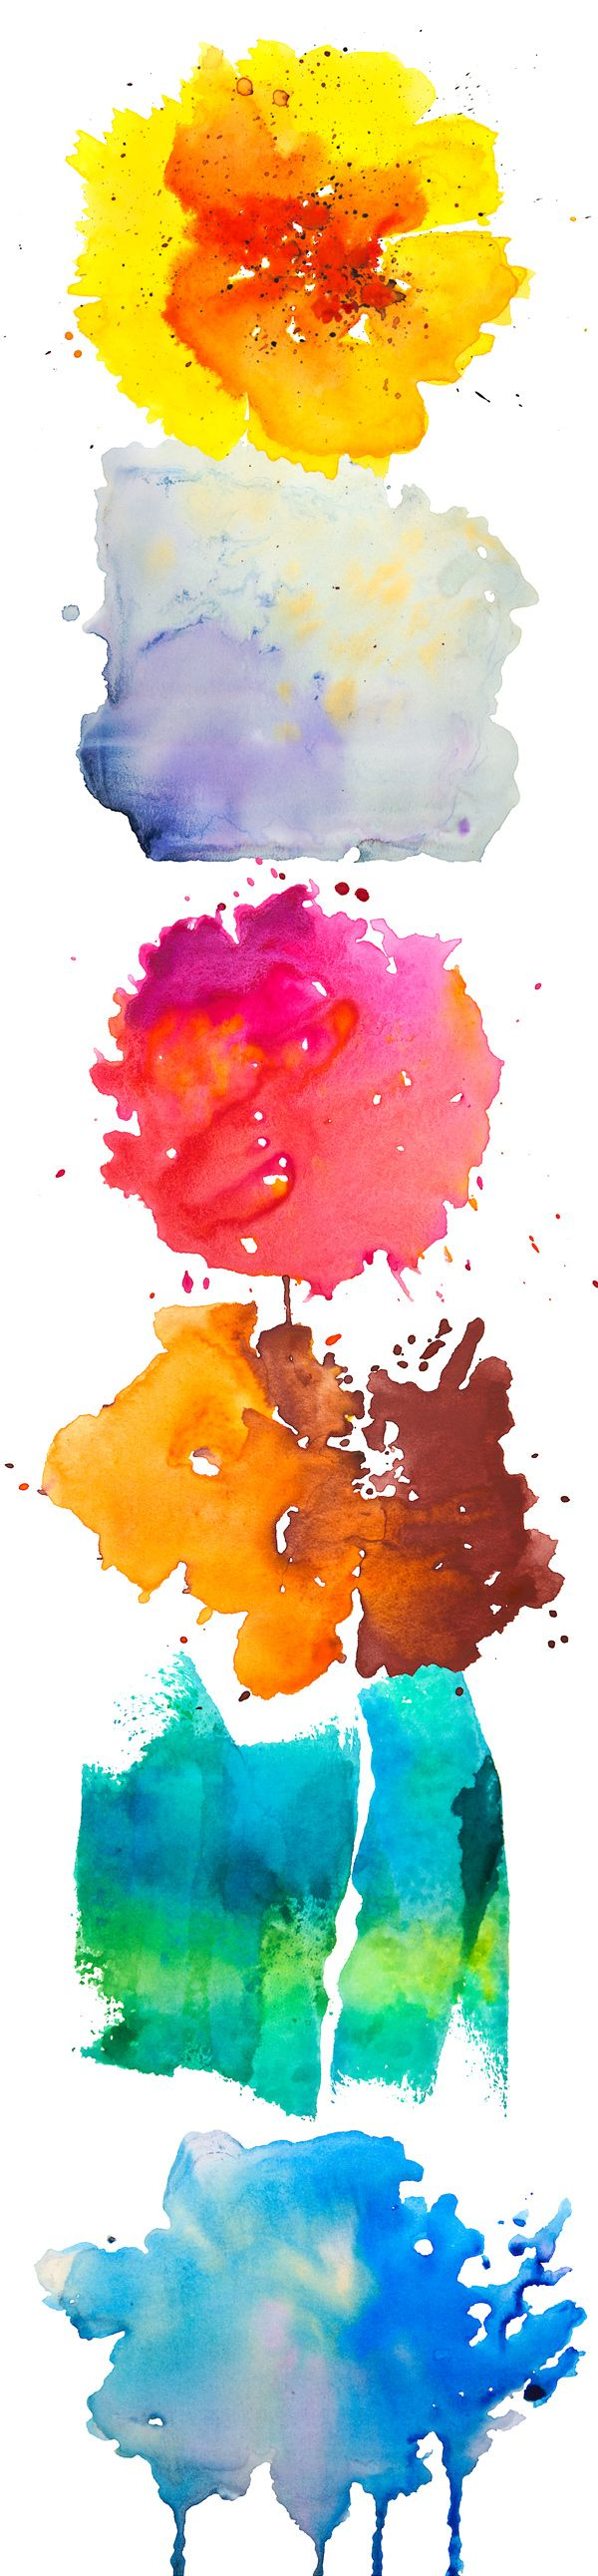 Free illustration watercolor pigment color free image - You Re Looking For Free Watercolor Textures To Add Some Splashy Details To Your Designs